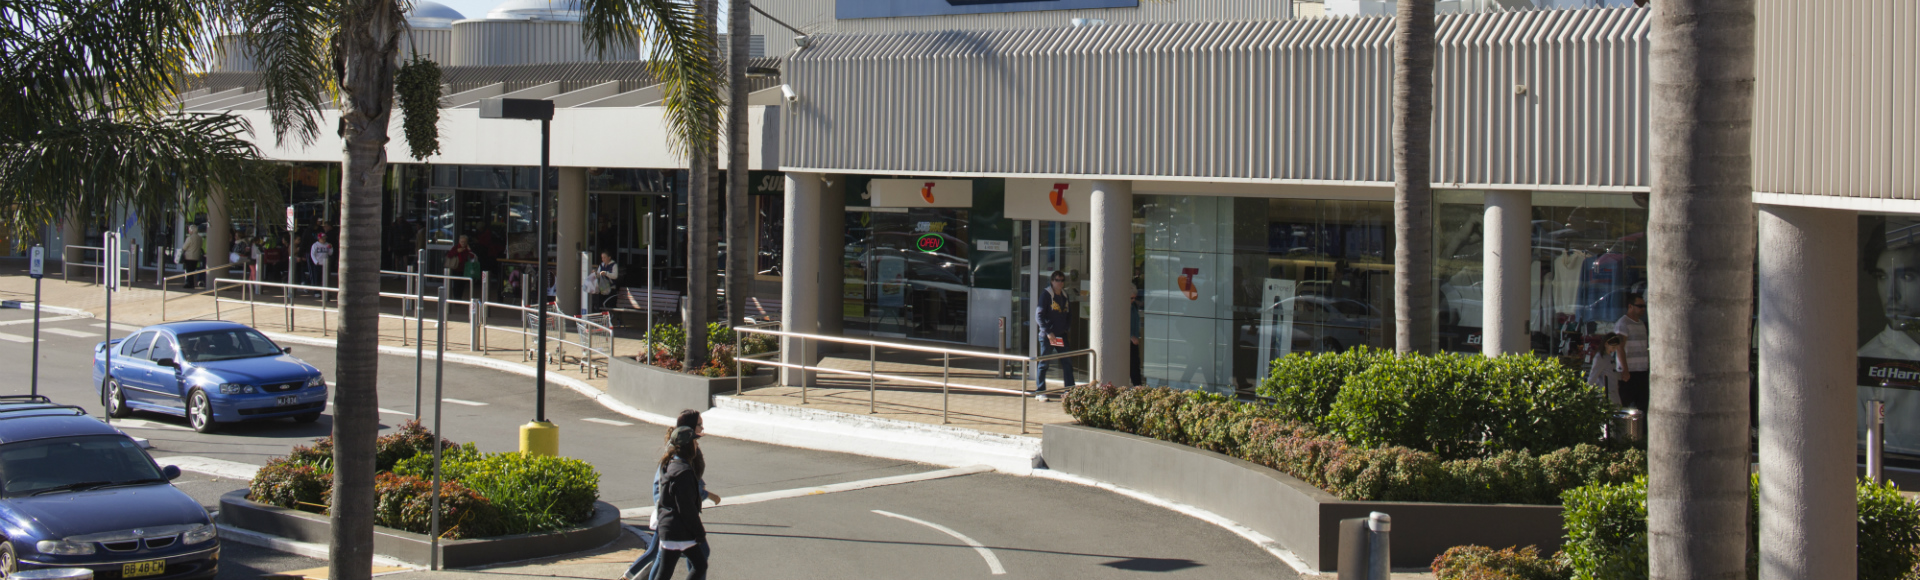 Nowra Shopping Centre Exterior Image 1920x580px